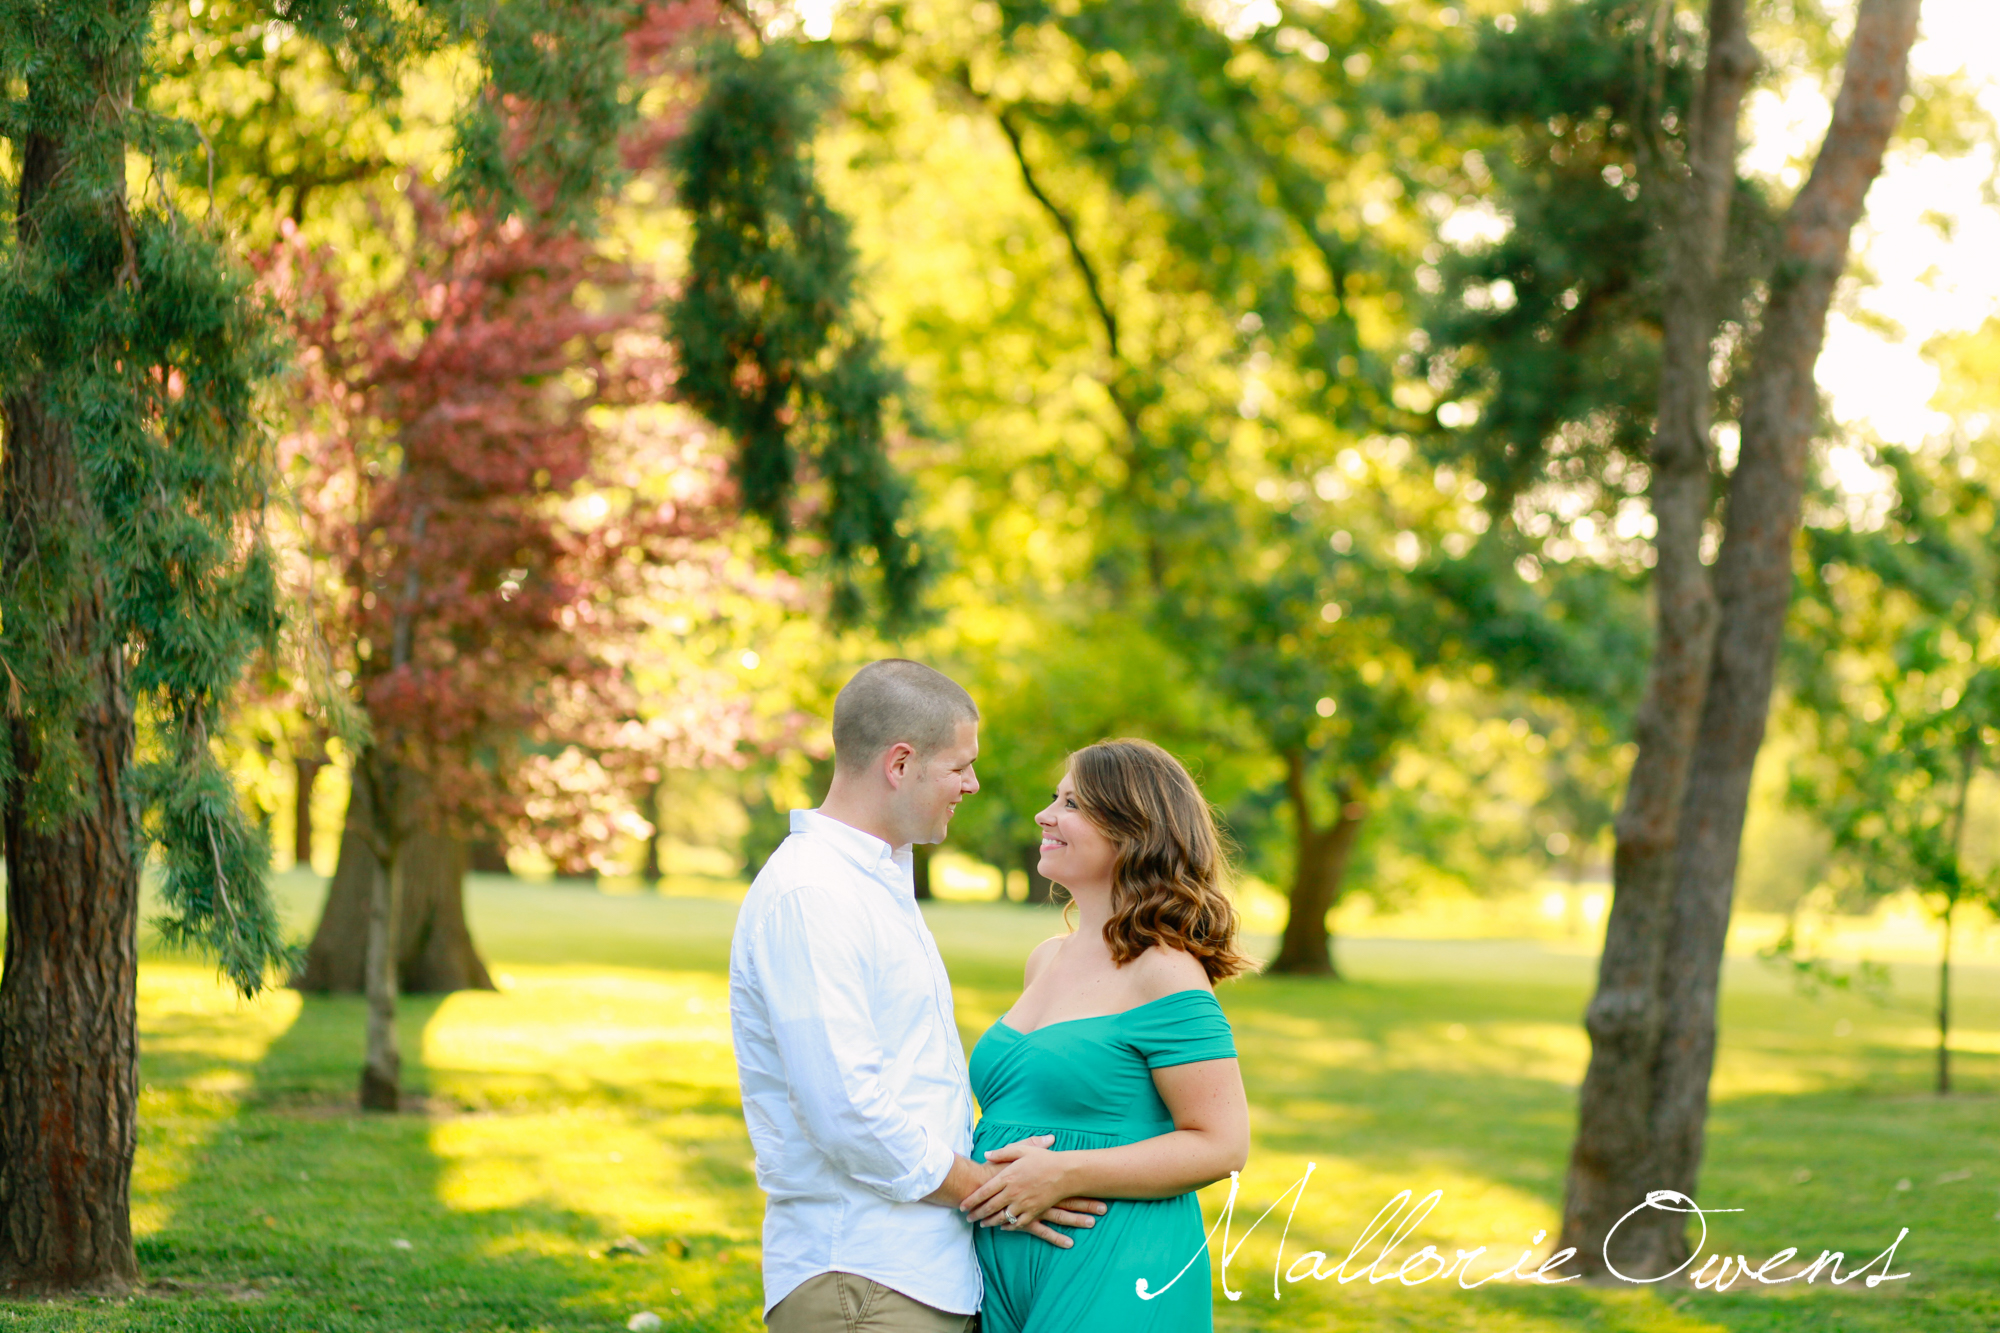 Kansas City Maternity Photography | Mallorie Owens